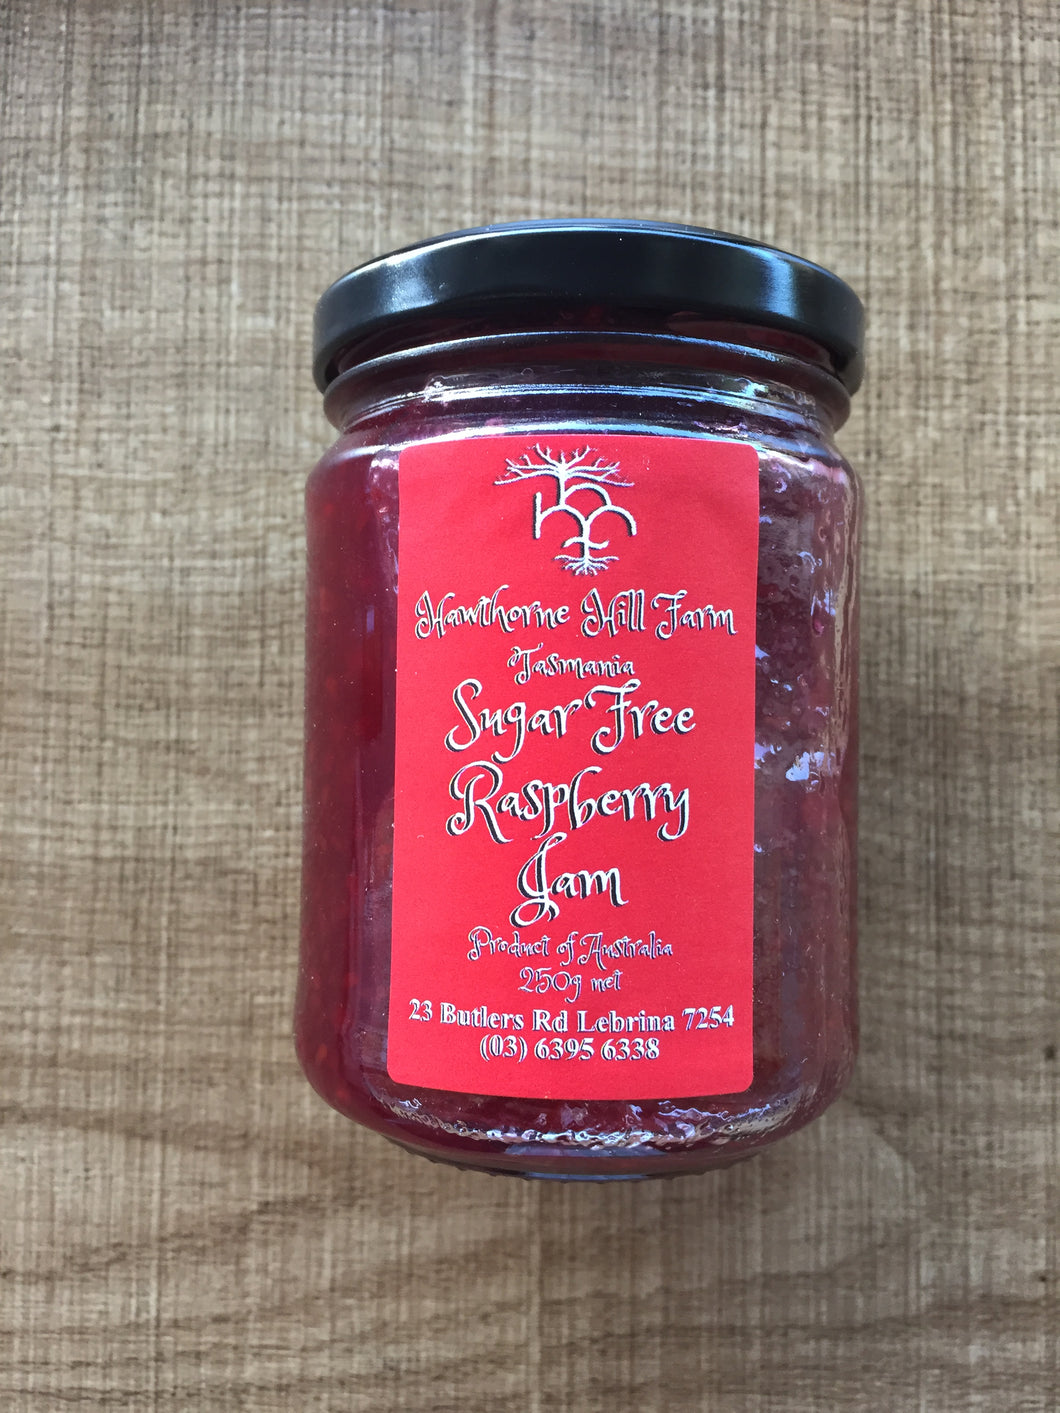 Hawthorne Hill Farm- Low Carb, Sugar Free Raspberry Jam